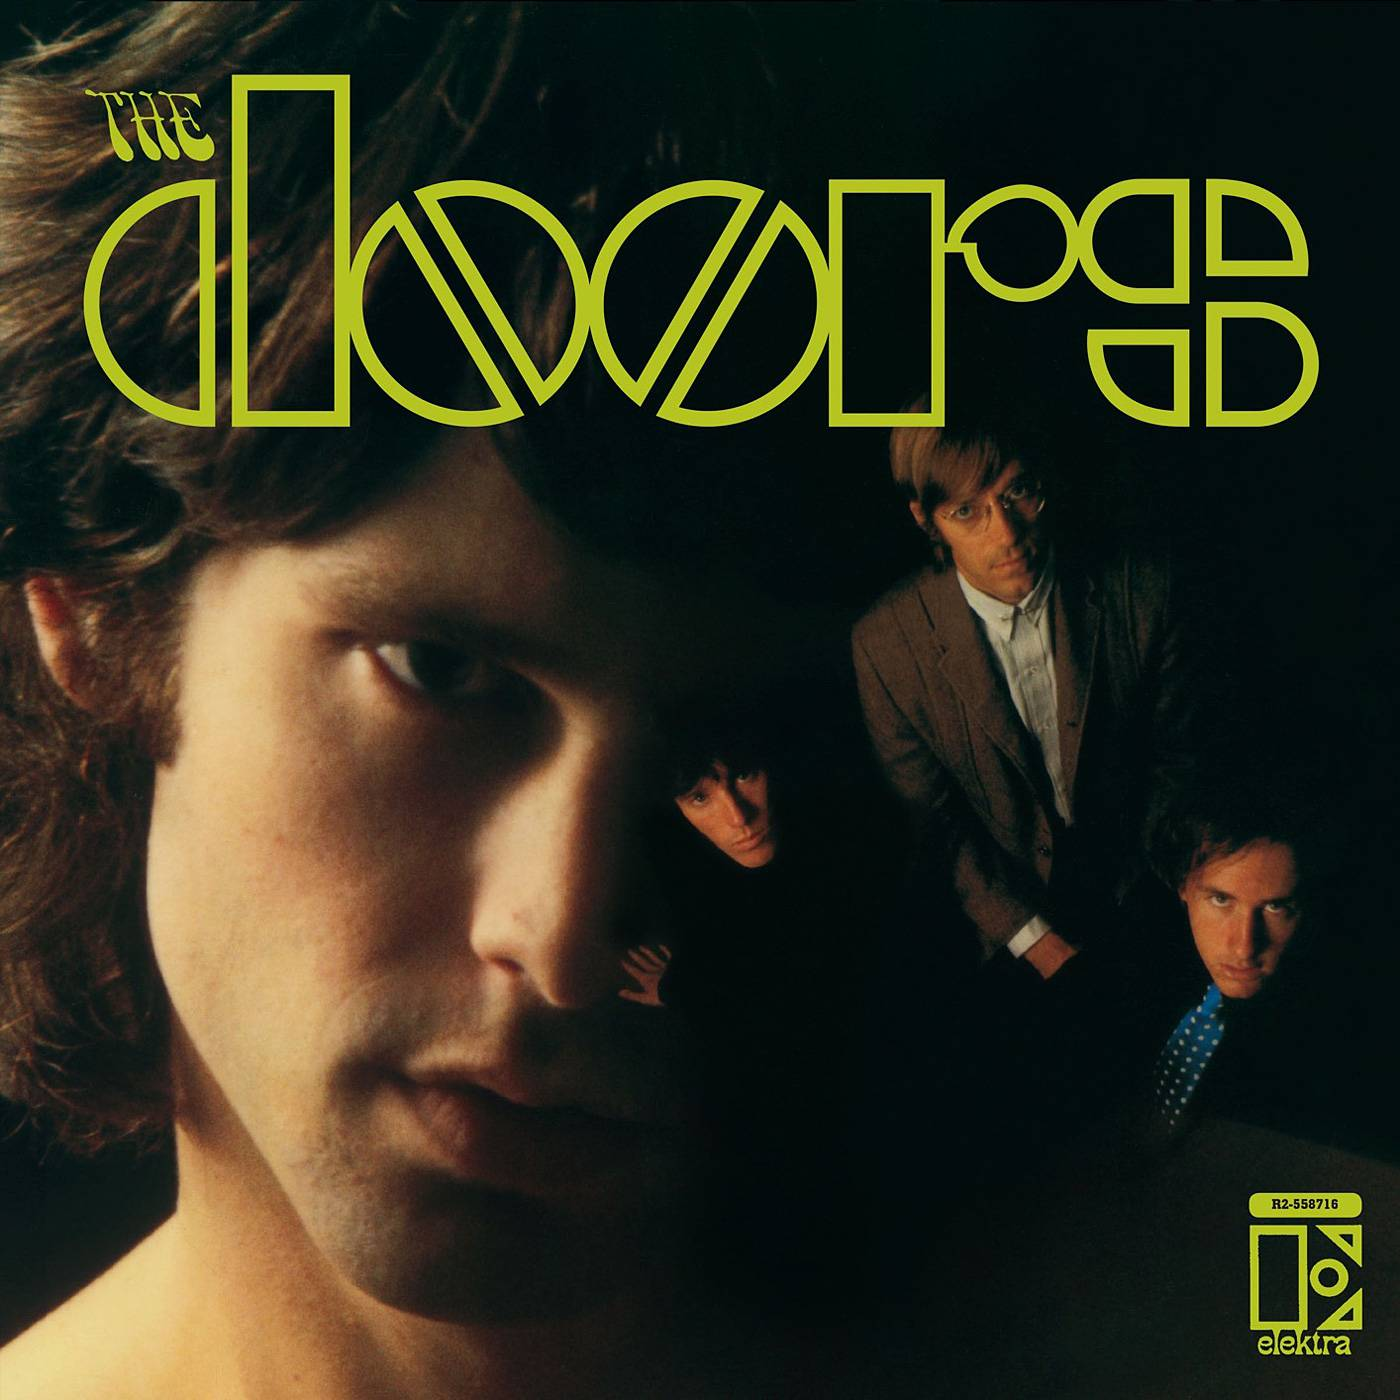 The Doors - The Doors (1967) [50th Anniversary Deluxe Edition 2017] (Official Digital Download 24/192)